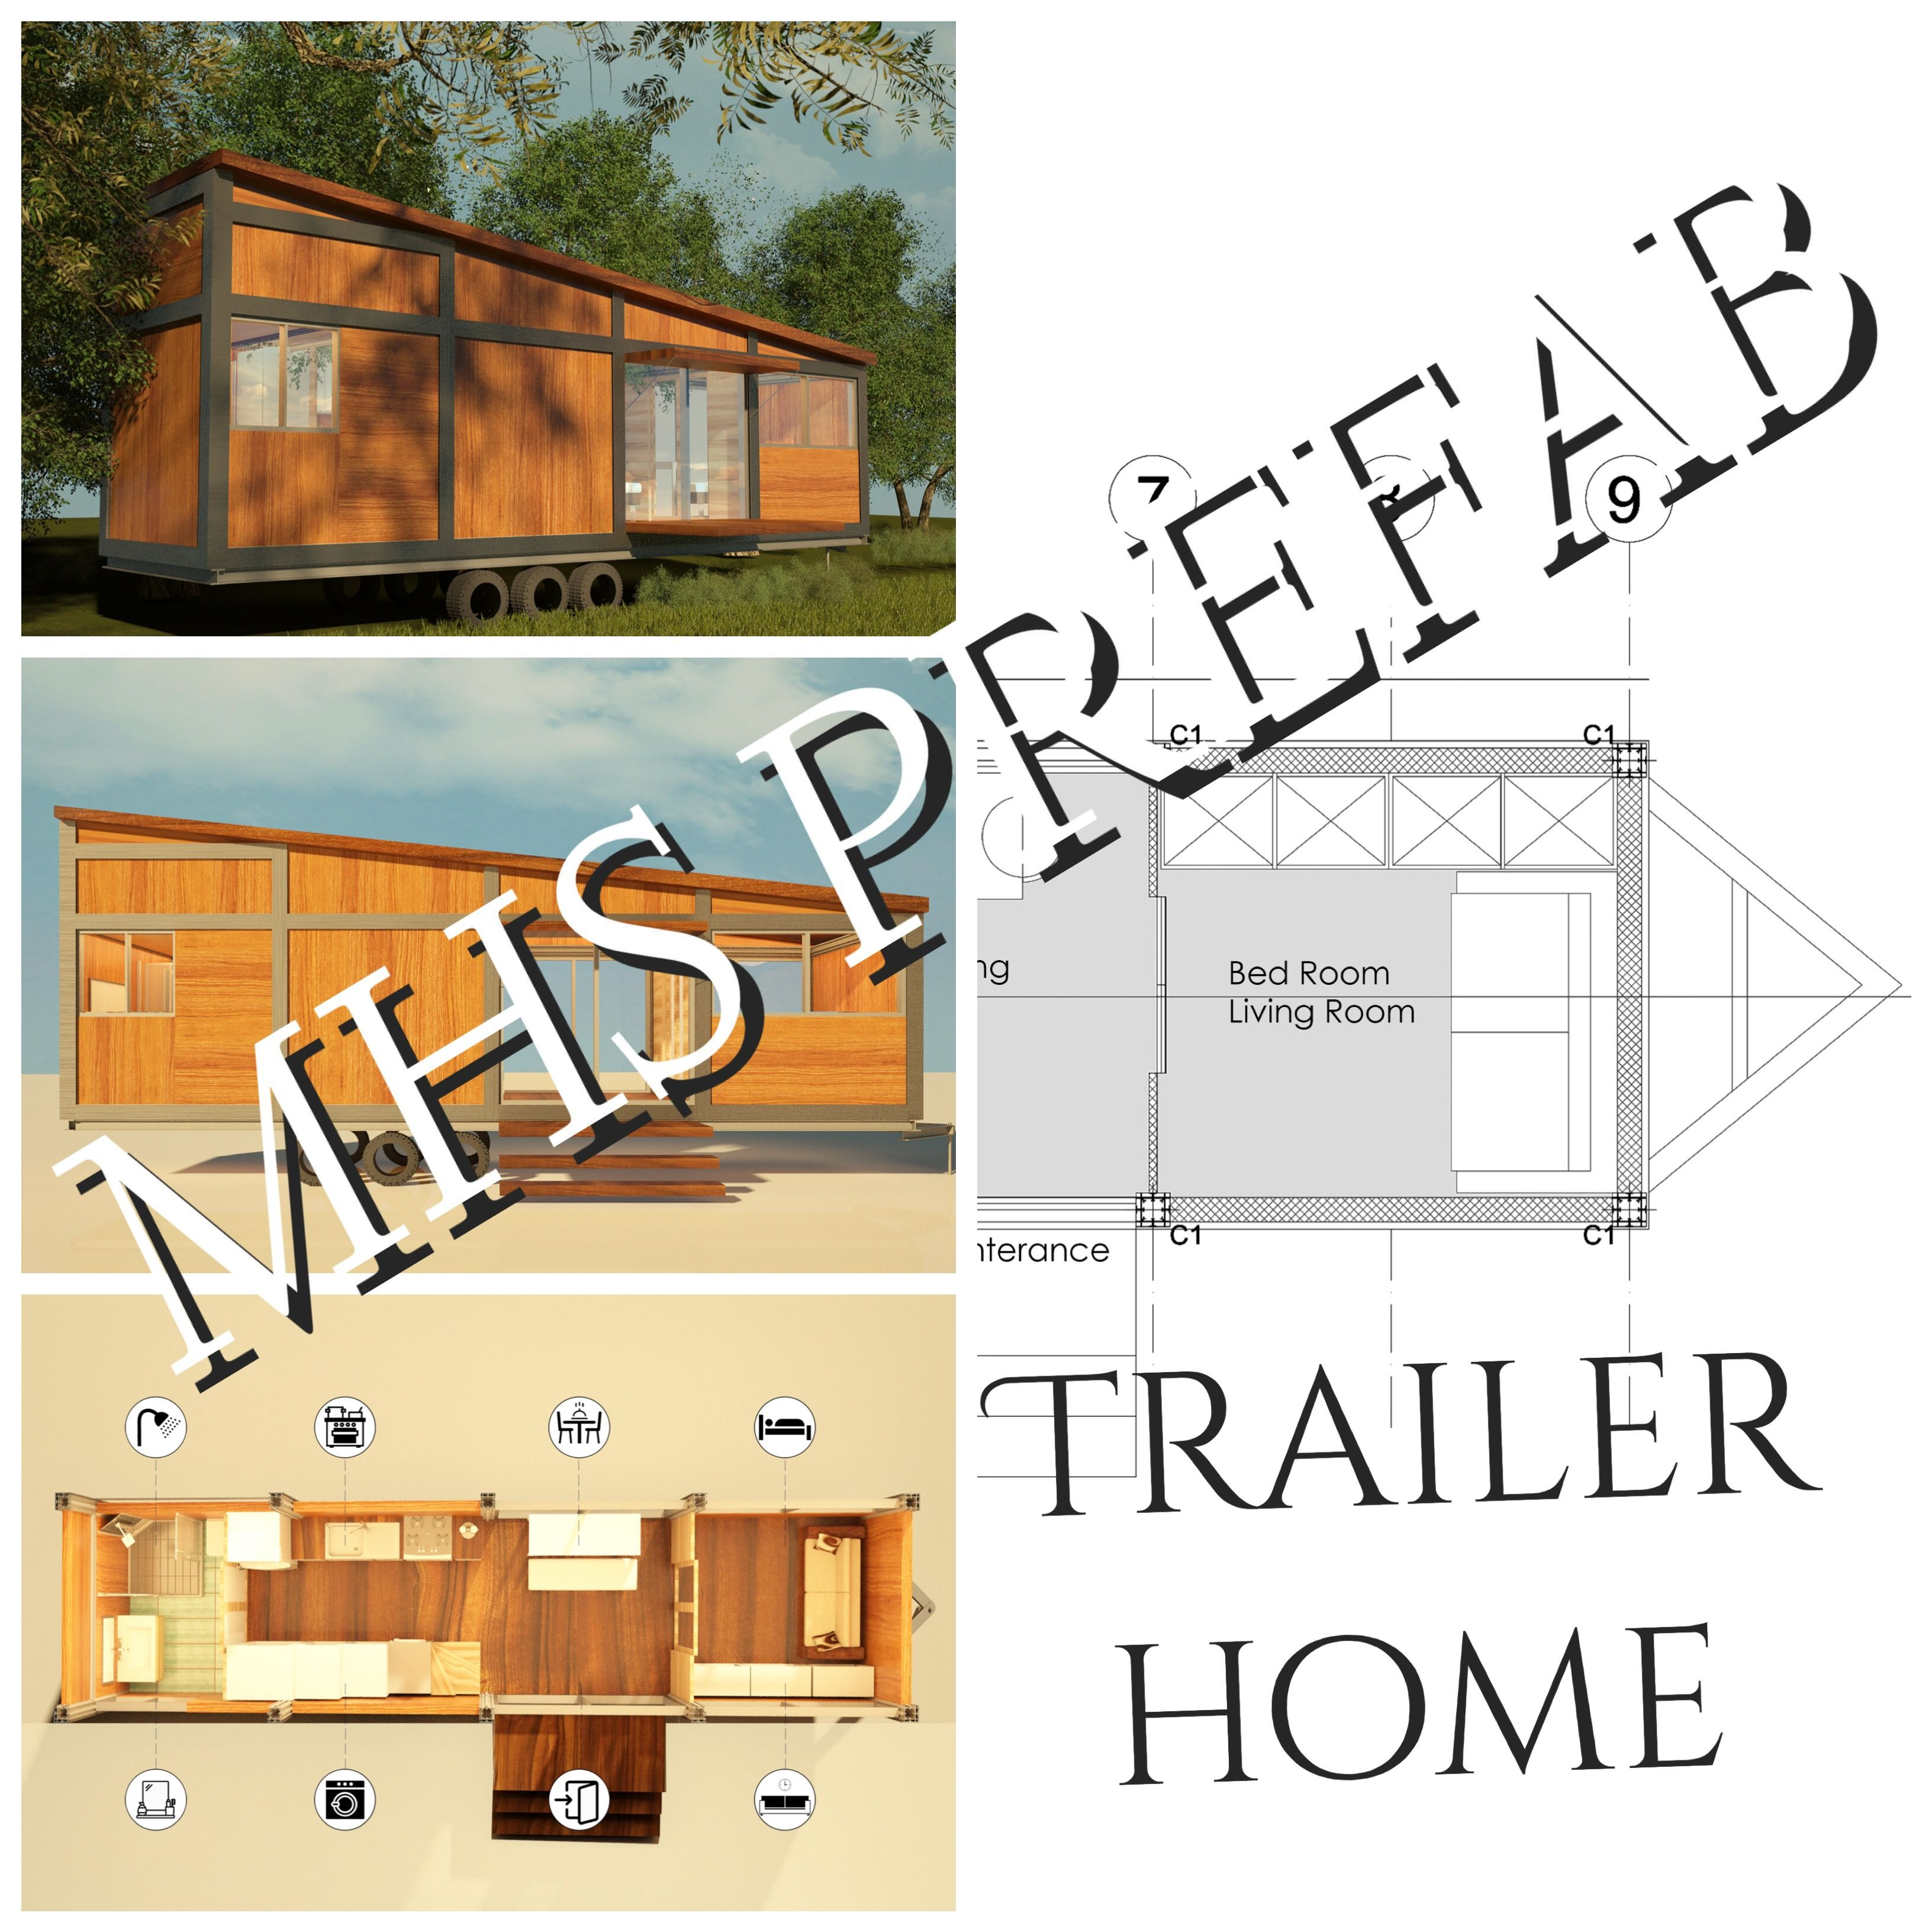 MHS Prefab sustainable trailer home start from 60k, ship ... on residential structure, spaceship structure, warehouse structure, castle structure, retail structure, random structure, car parking structure, umbrella structure, industrial structure, ship structure, web structure, barn structure, farm structure, automobile structure, screen structure, mooring structure, business structure, office structure, condo structure,